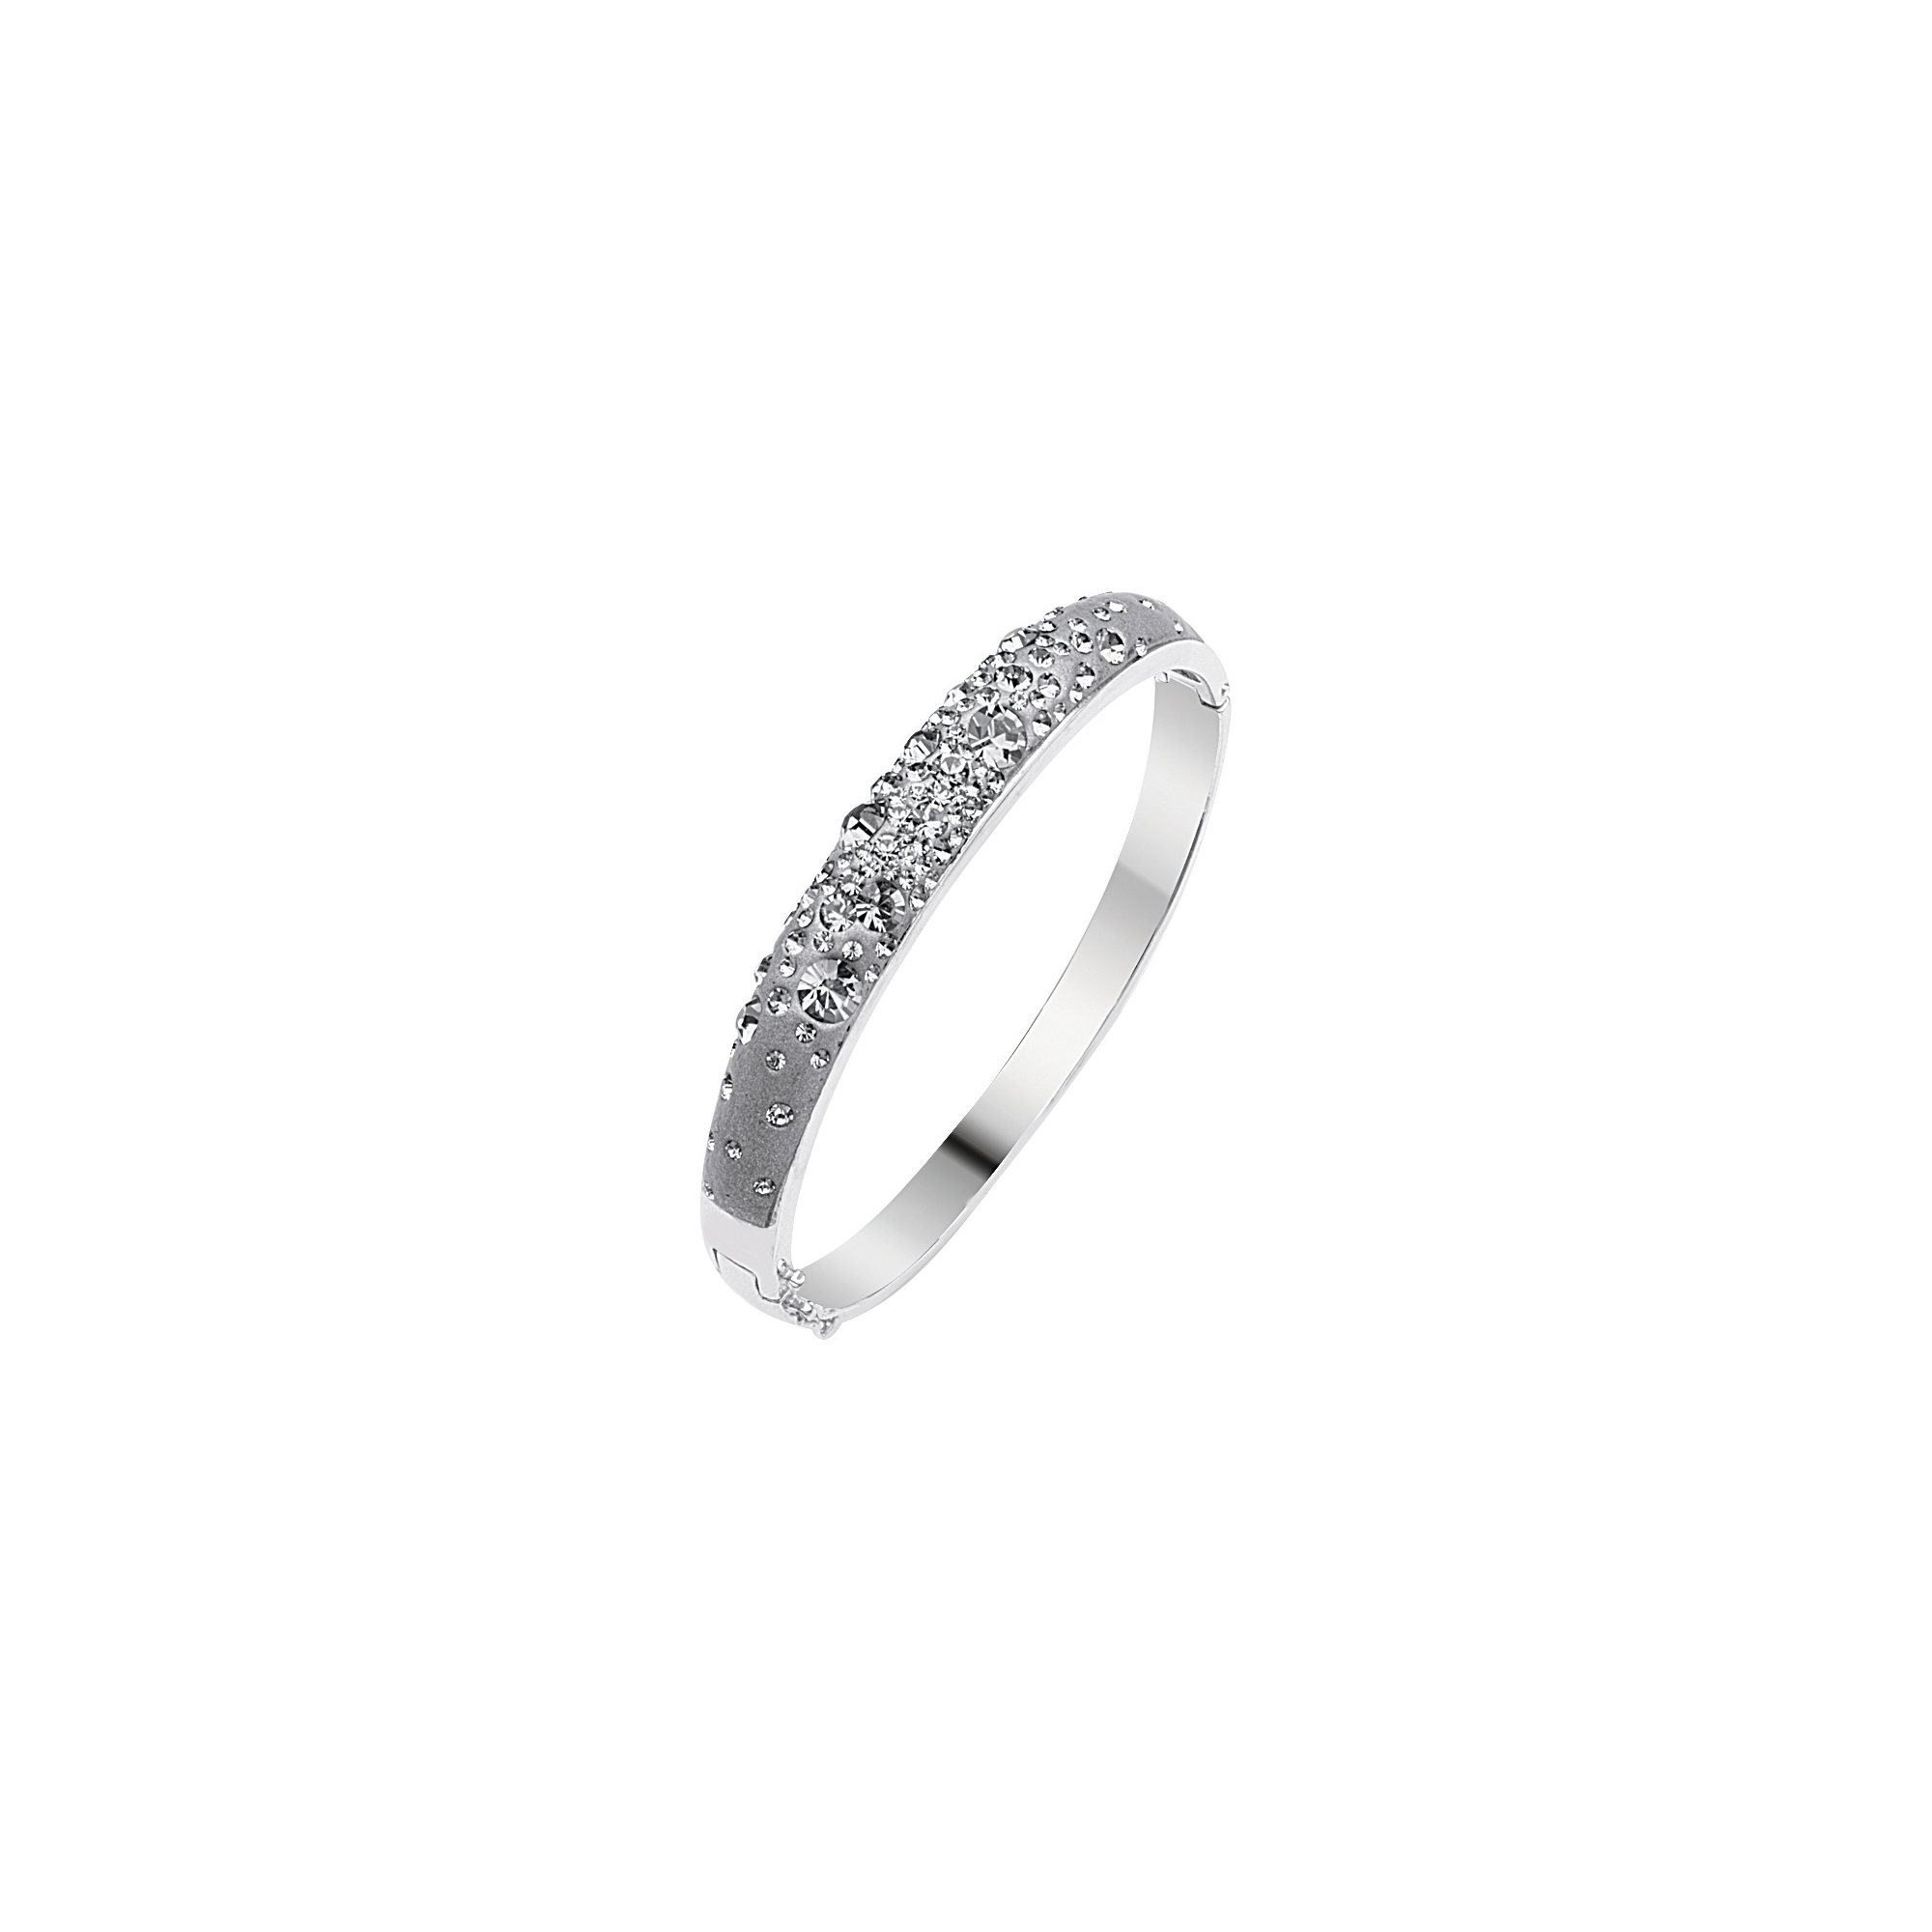 Dome Ring, Silver Drk Grey Dome Bangle